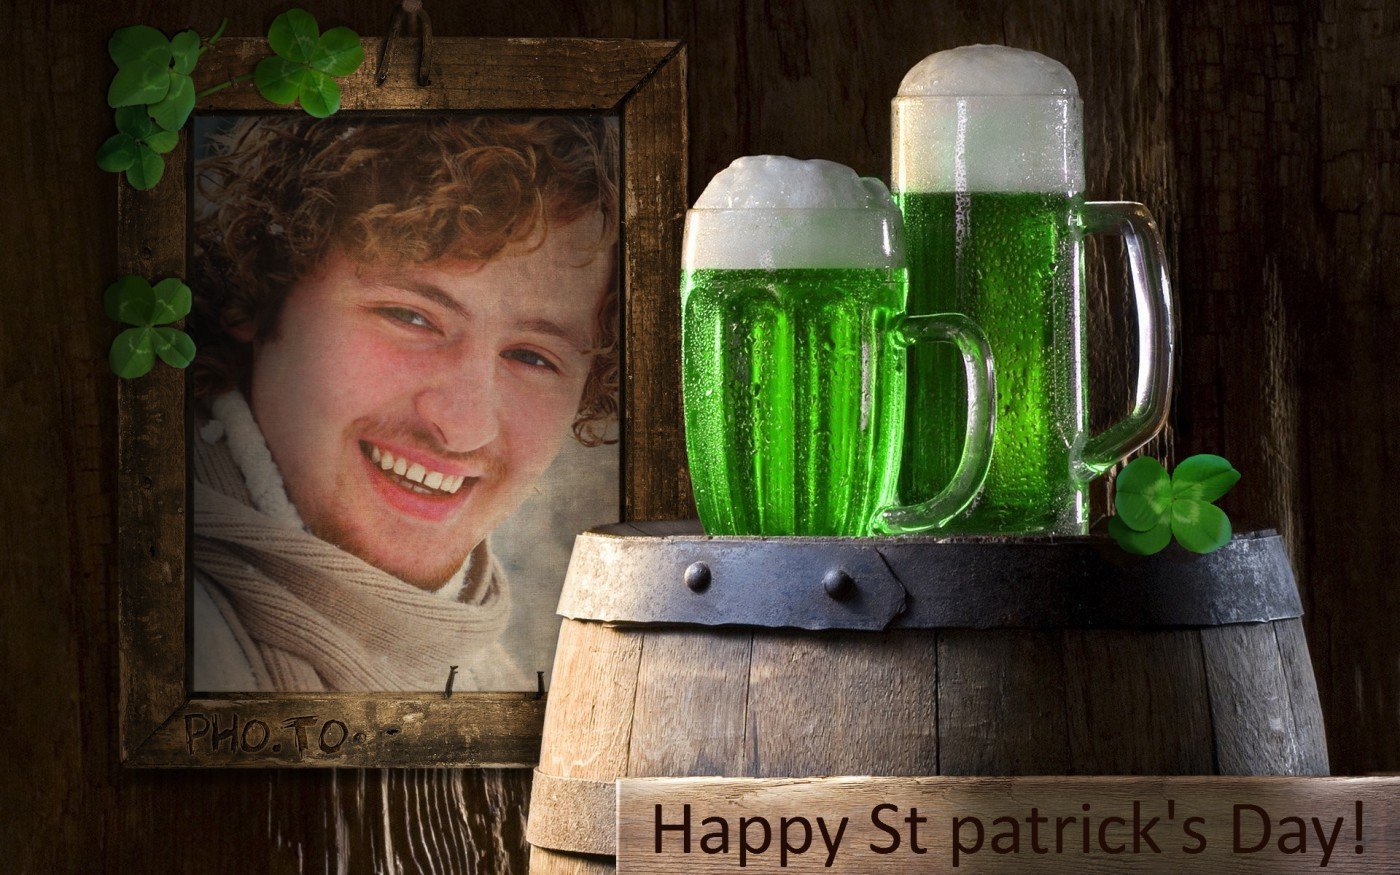 St Patrick's Day ecard frame for your pic and holiday greetings.